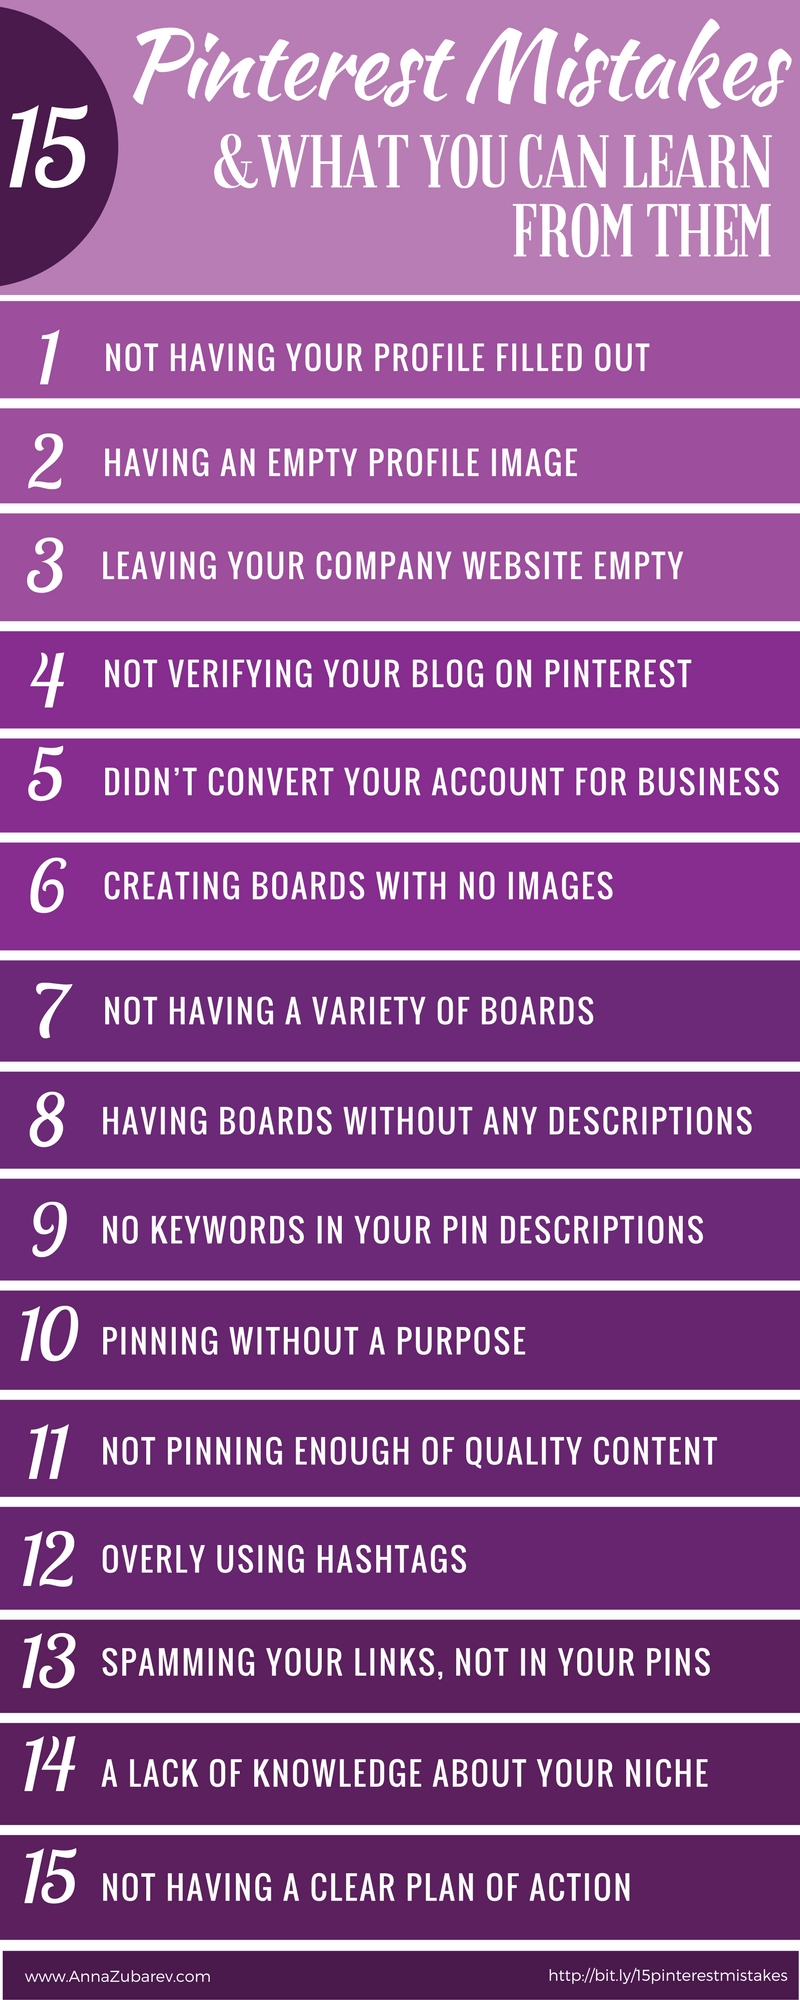 15 Pinterest Mistakes and What You Can Learn From Them via @annazubarev